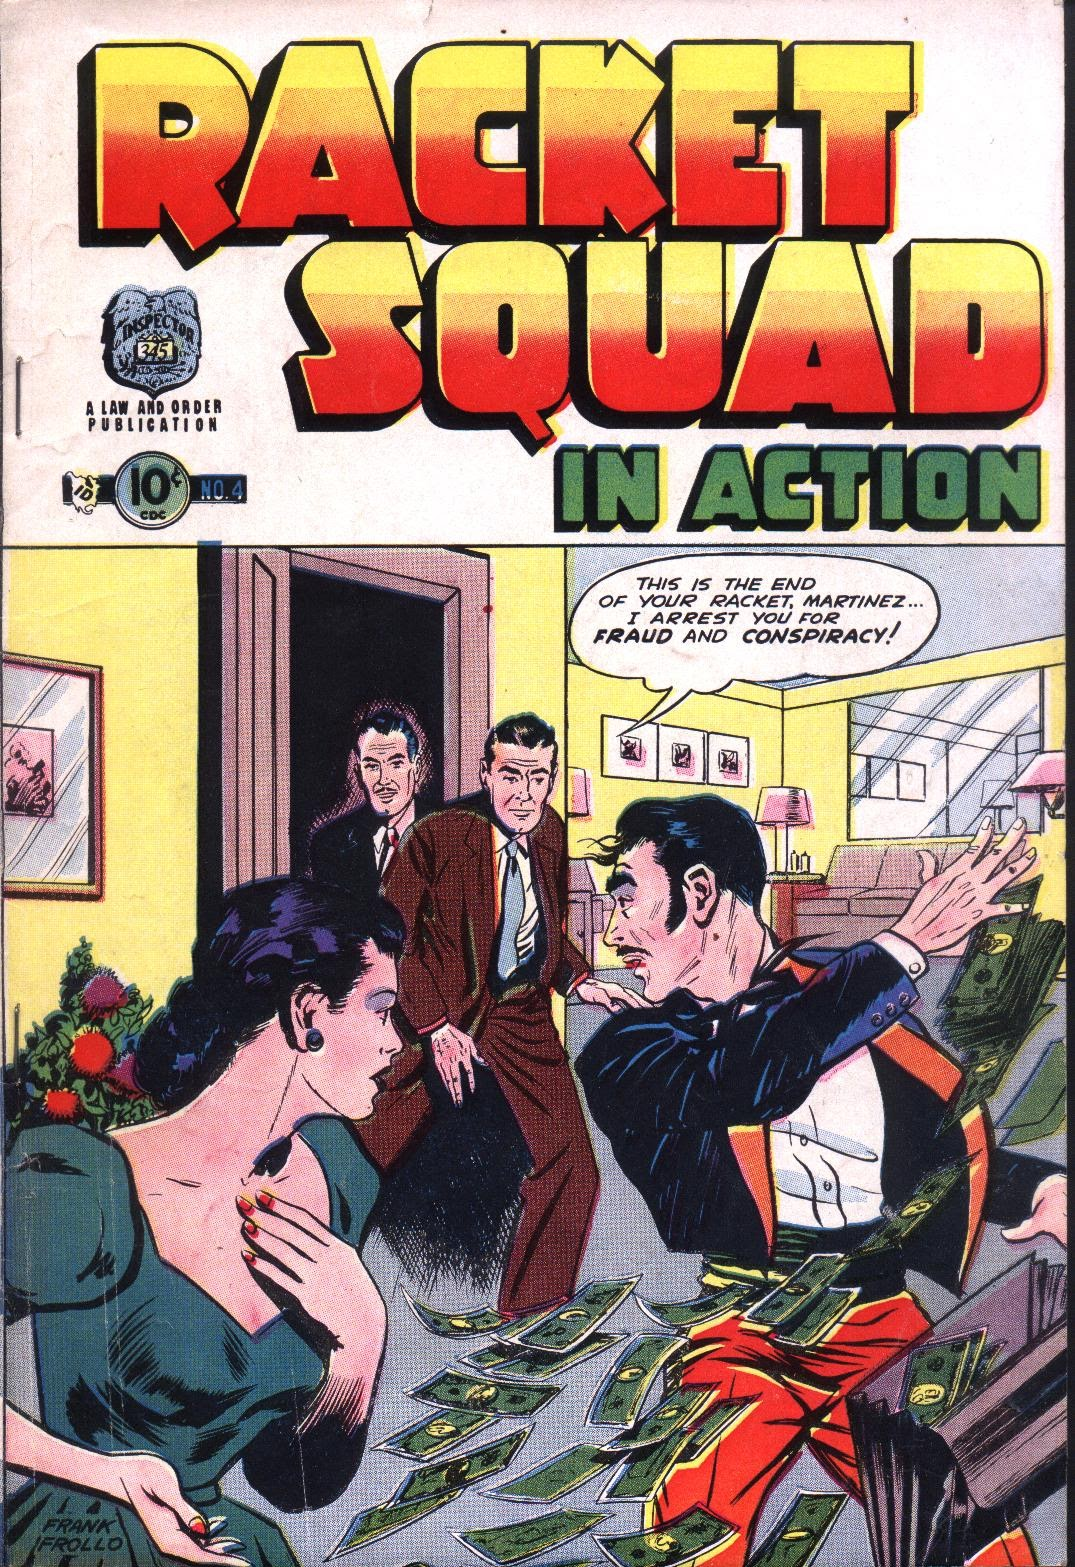 Read online Racket Squad in Action comic -  Issue #4 - 1